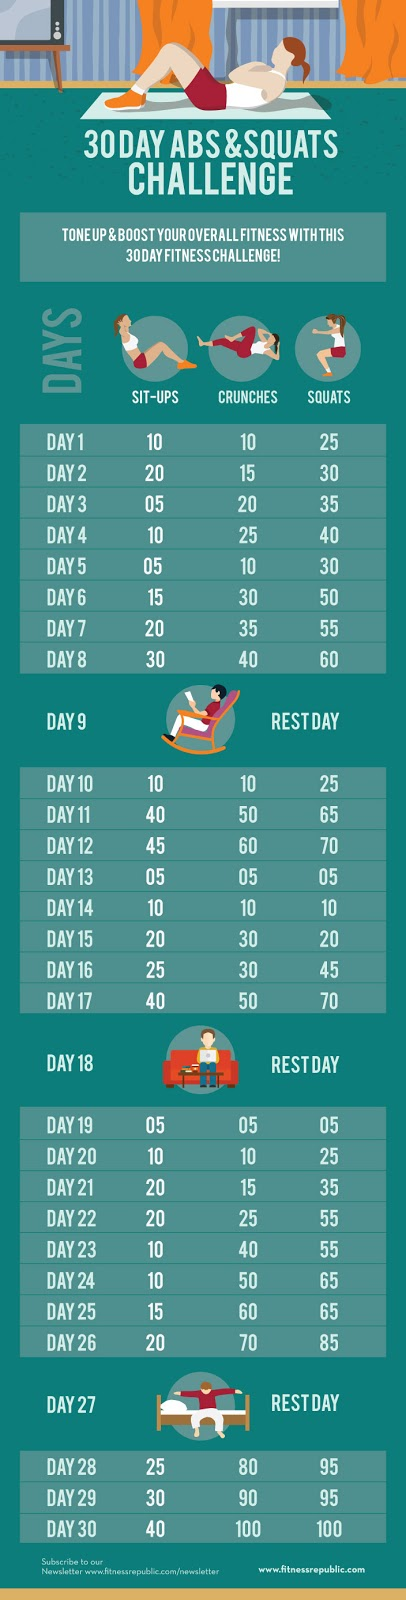 30-day-abs-and-squats-challenge-20150422-033252 | Thể dục